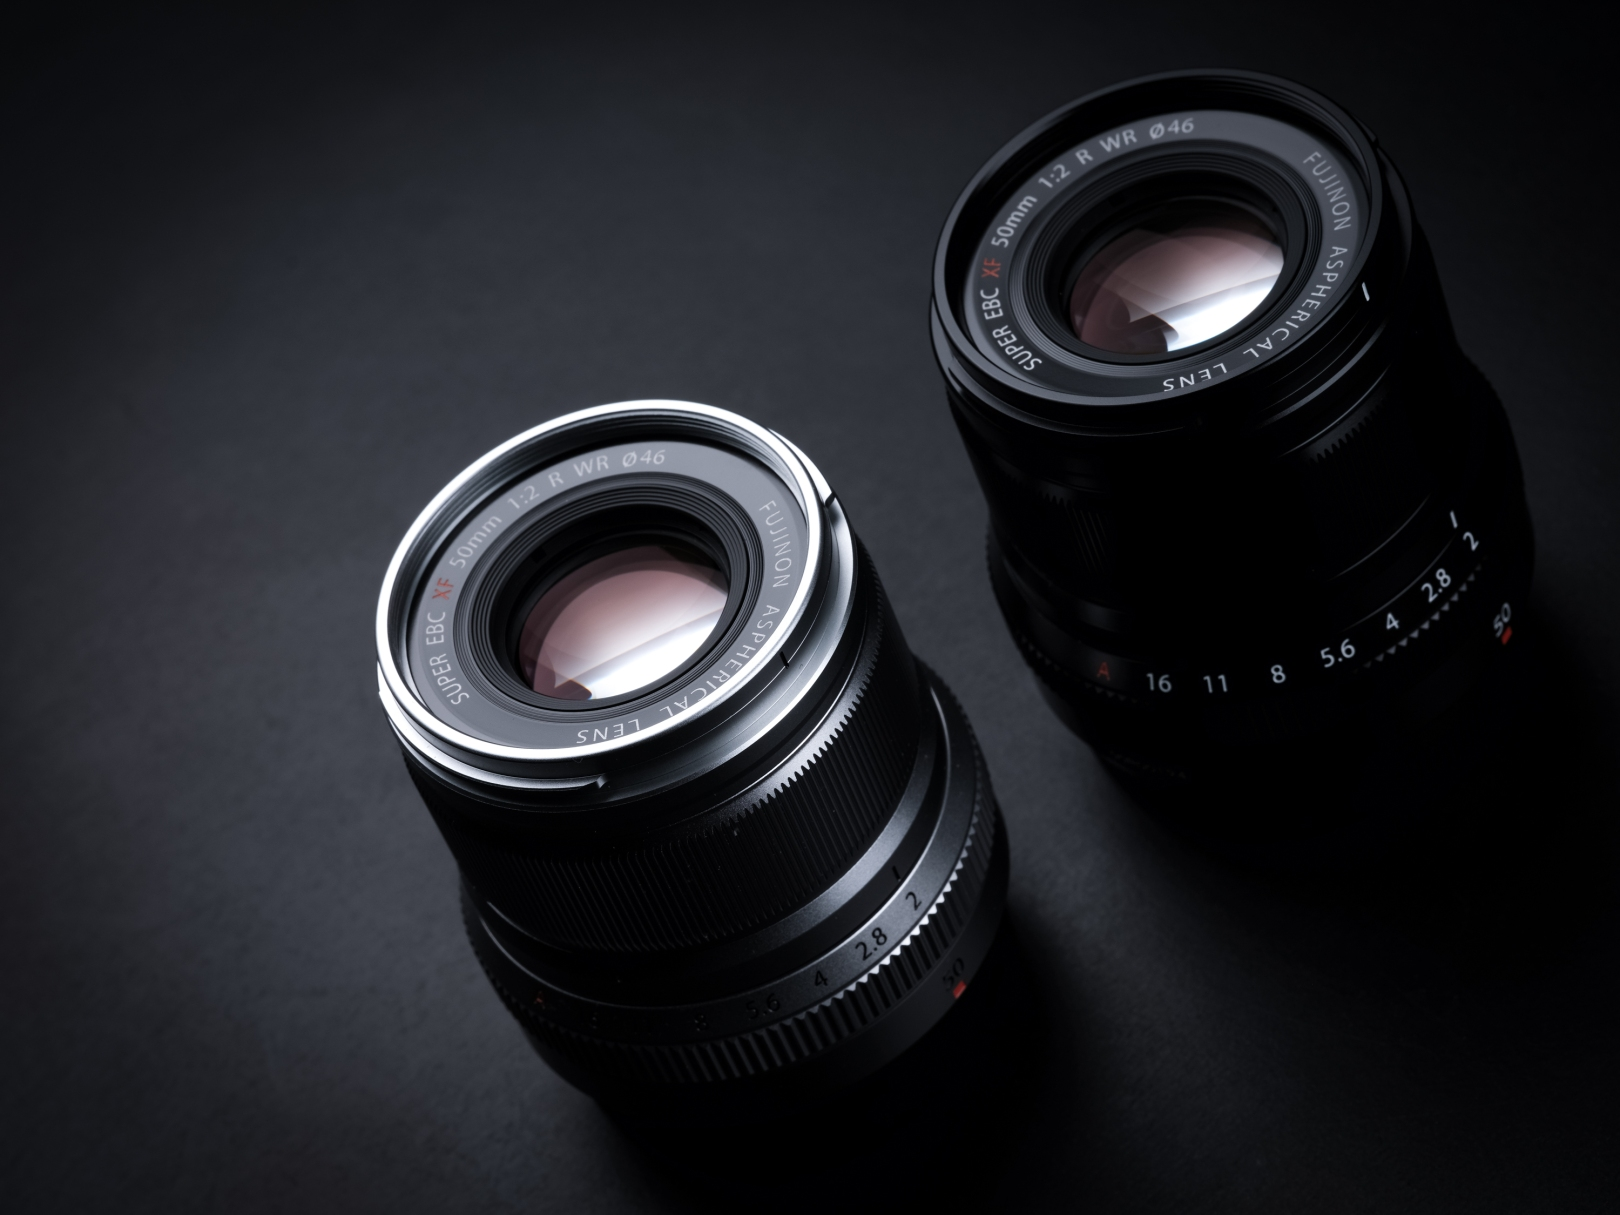 Fujinon 50mm F 2 First Look Completing Compact Jonasrask Photography Fujifilm X E3 Kit Xf 23mm F2 Silver 35mm F14